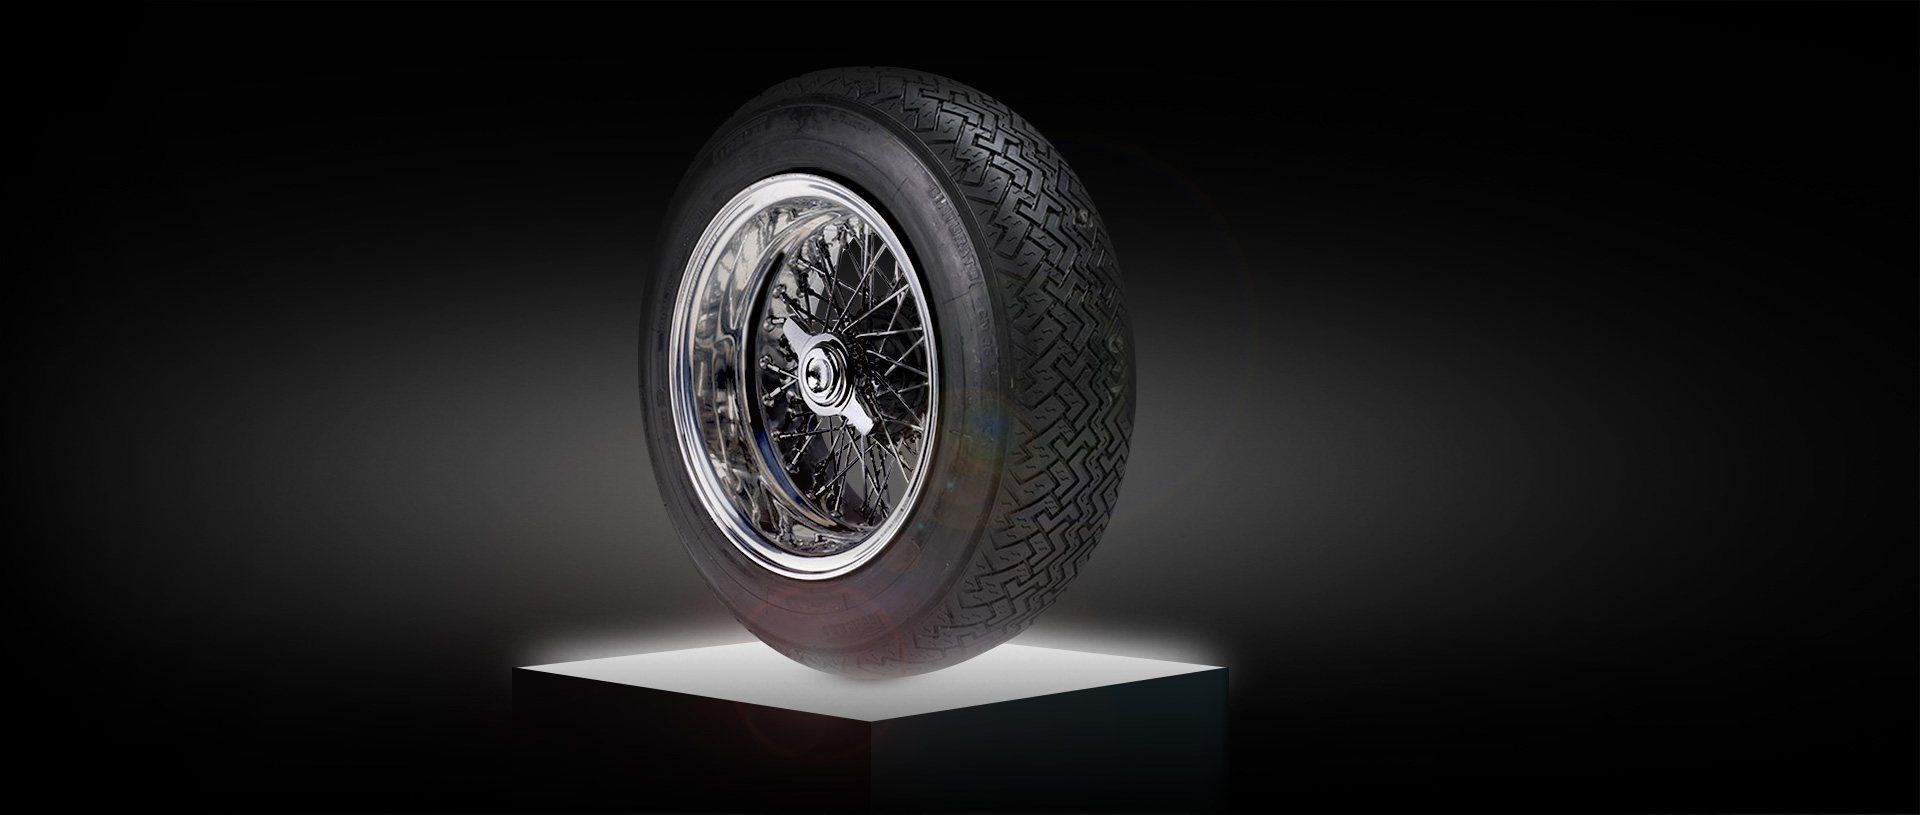 PIRELLI TYRES FOR CLASSIC & VINTAGE CARS